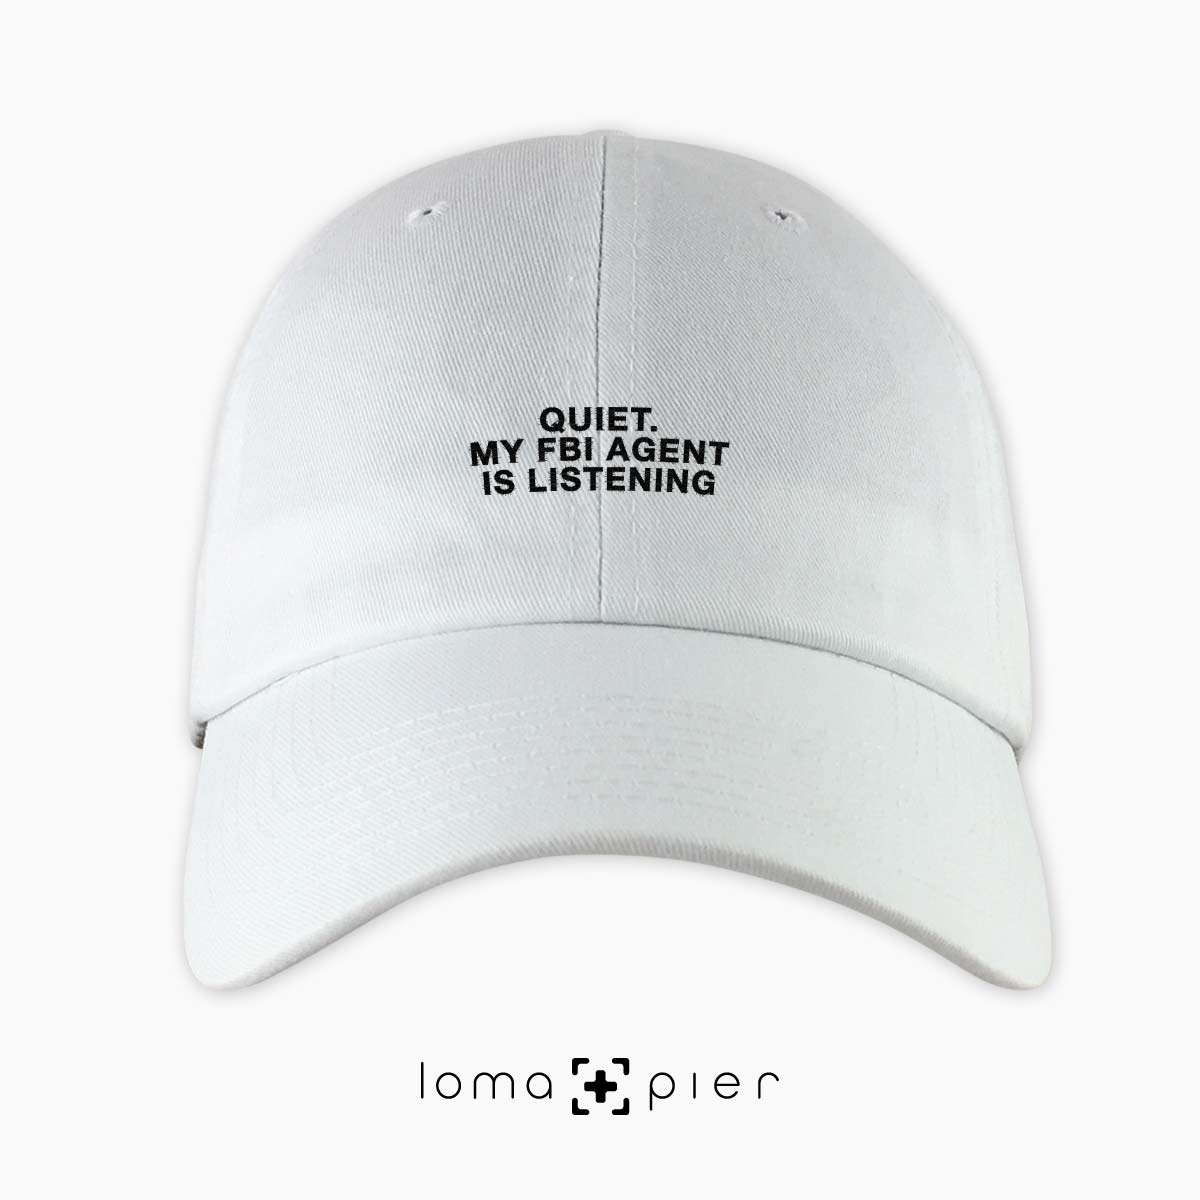 QUIET MY FBI AGENT IS LISTENING dad hat in white by loma+pier hat store